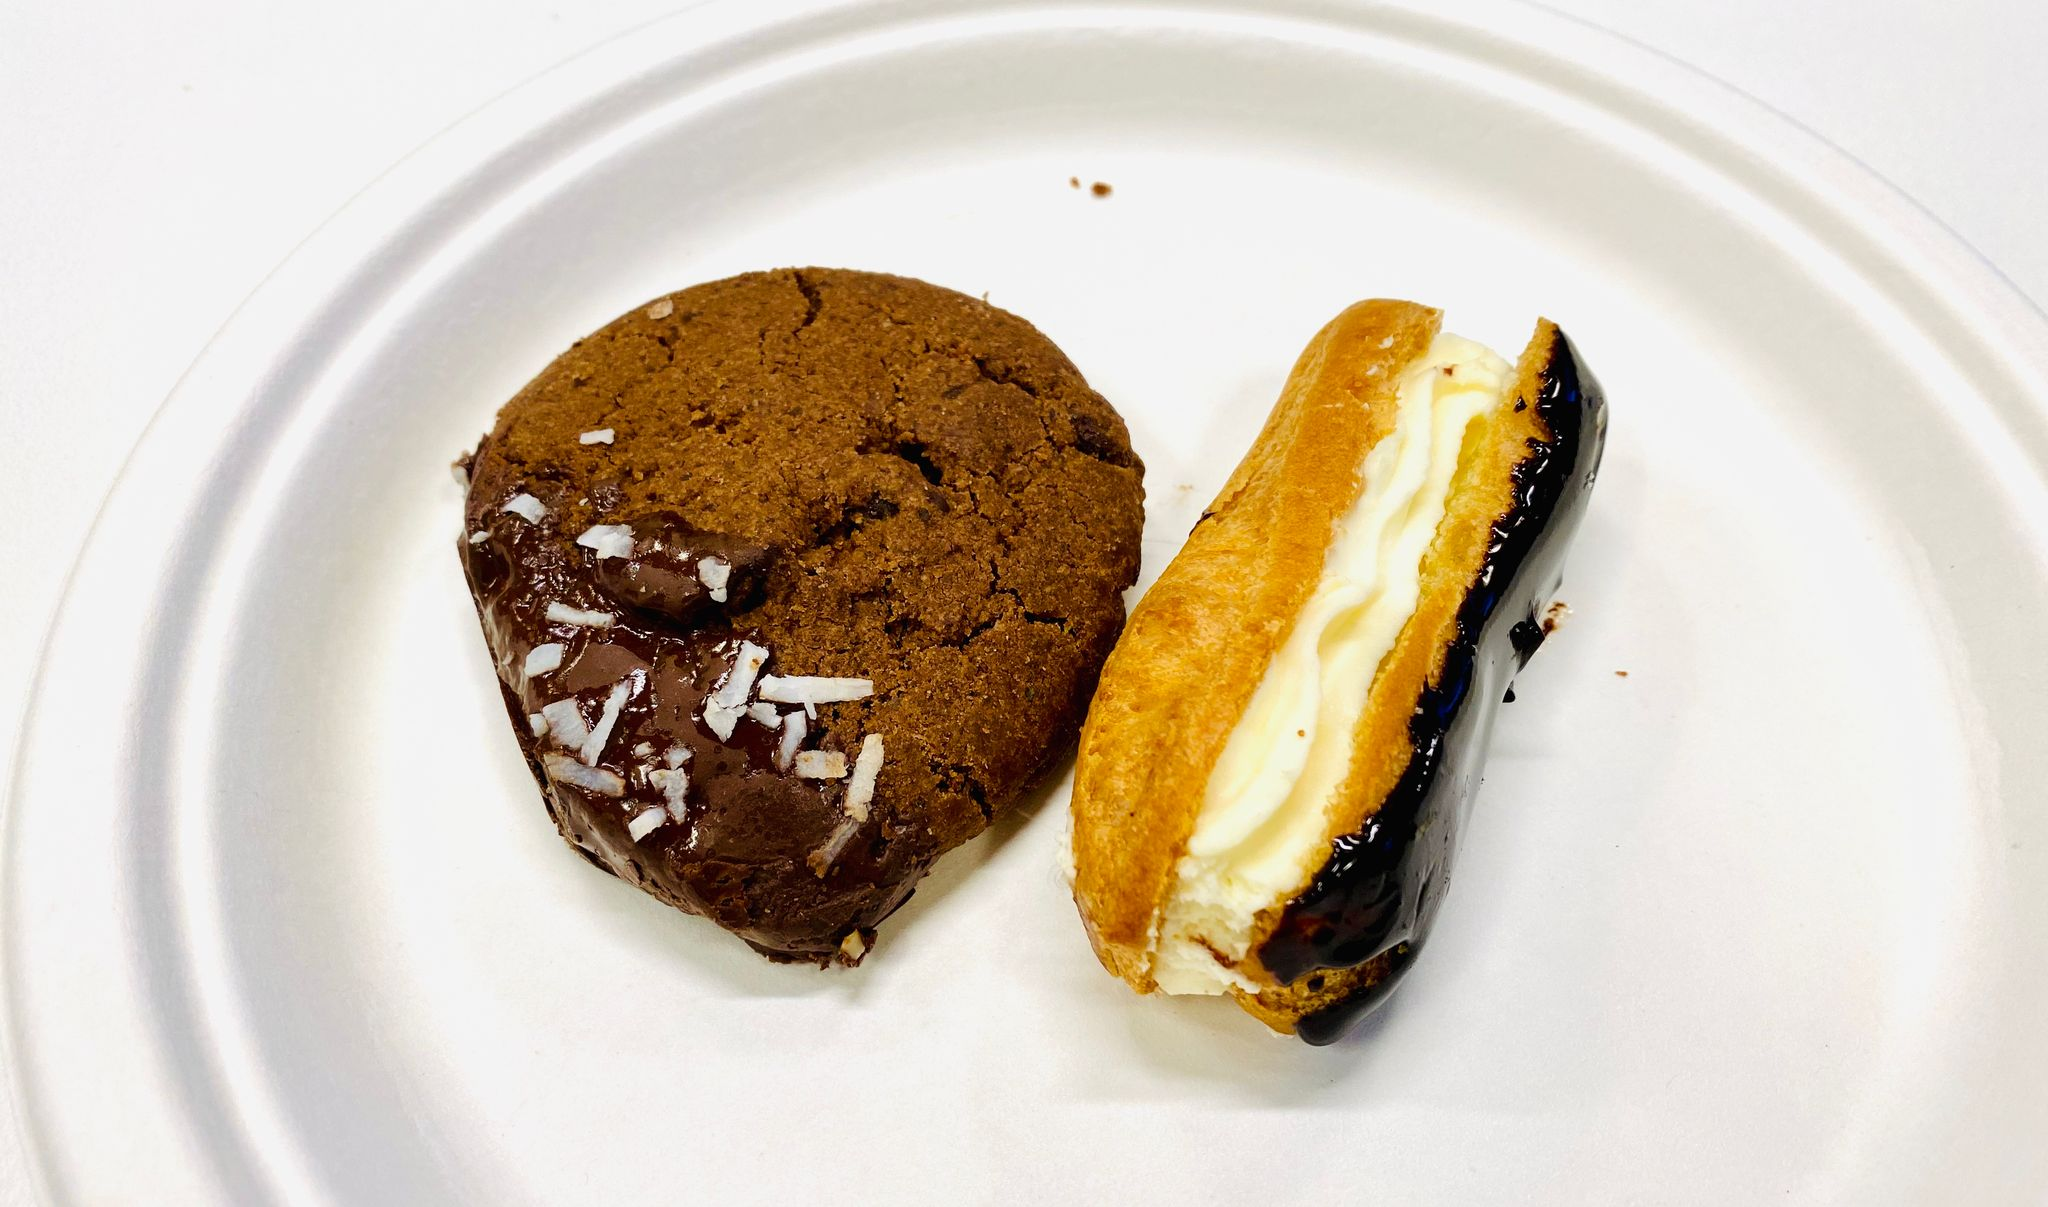 A photo of a vegan chocolate cookie and a decidedly not-vegan chocolate eclair on a plate.